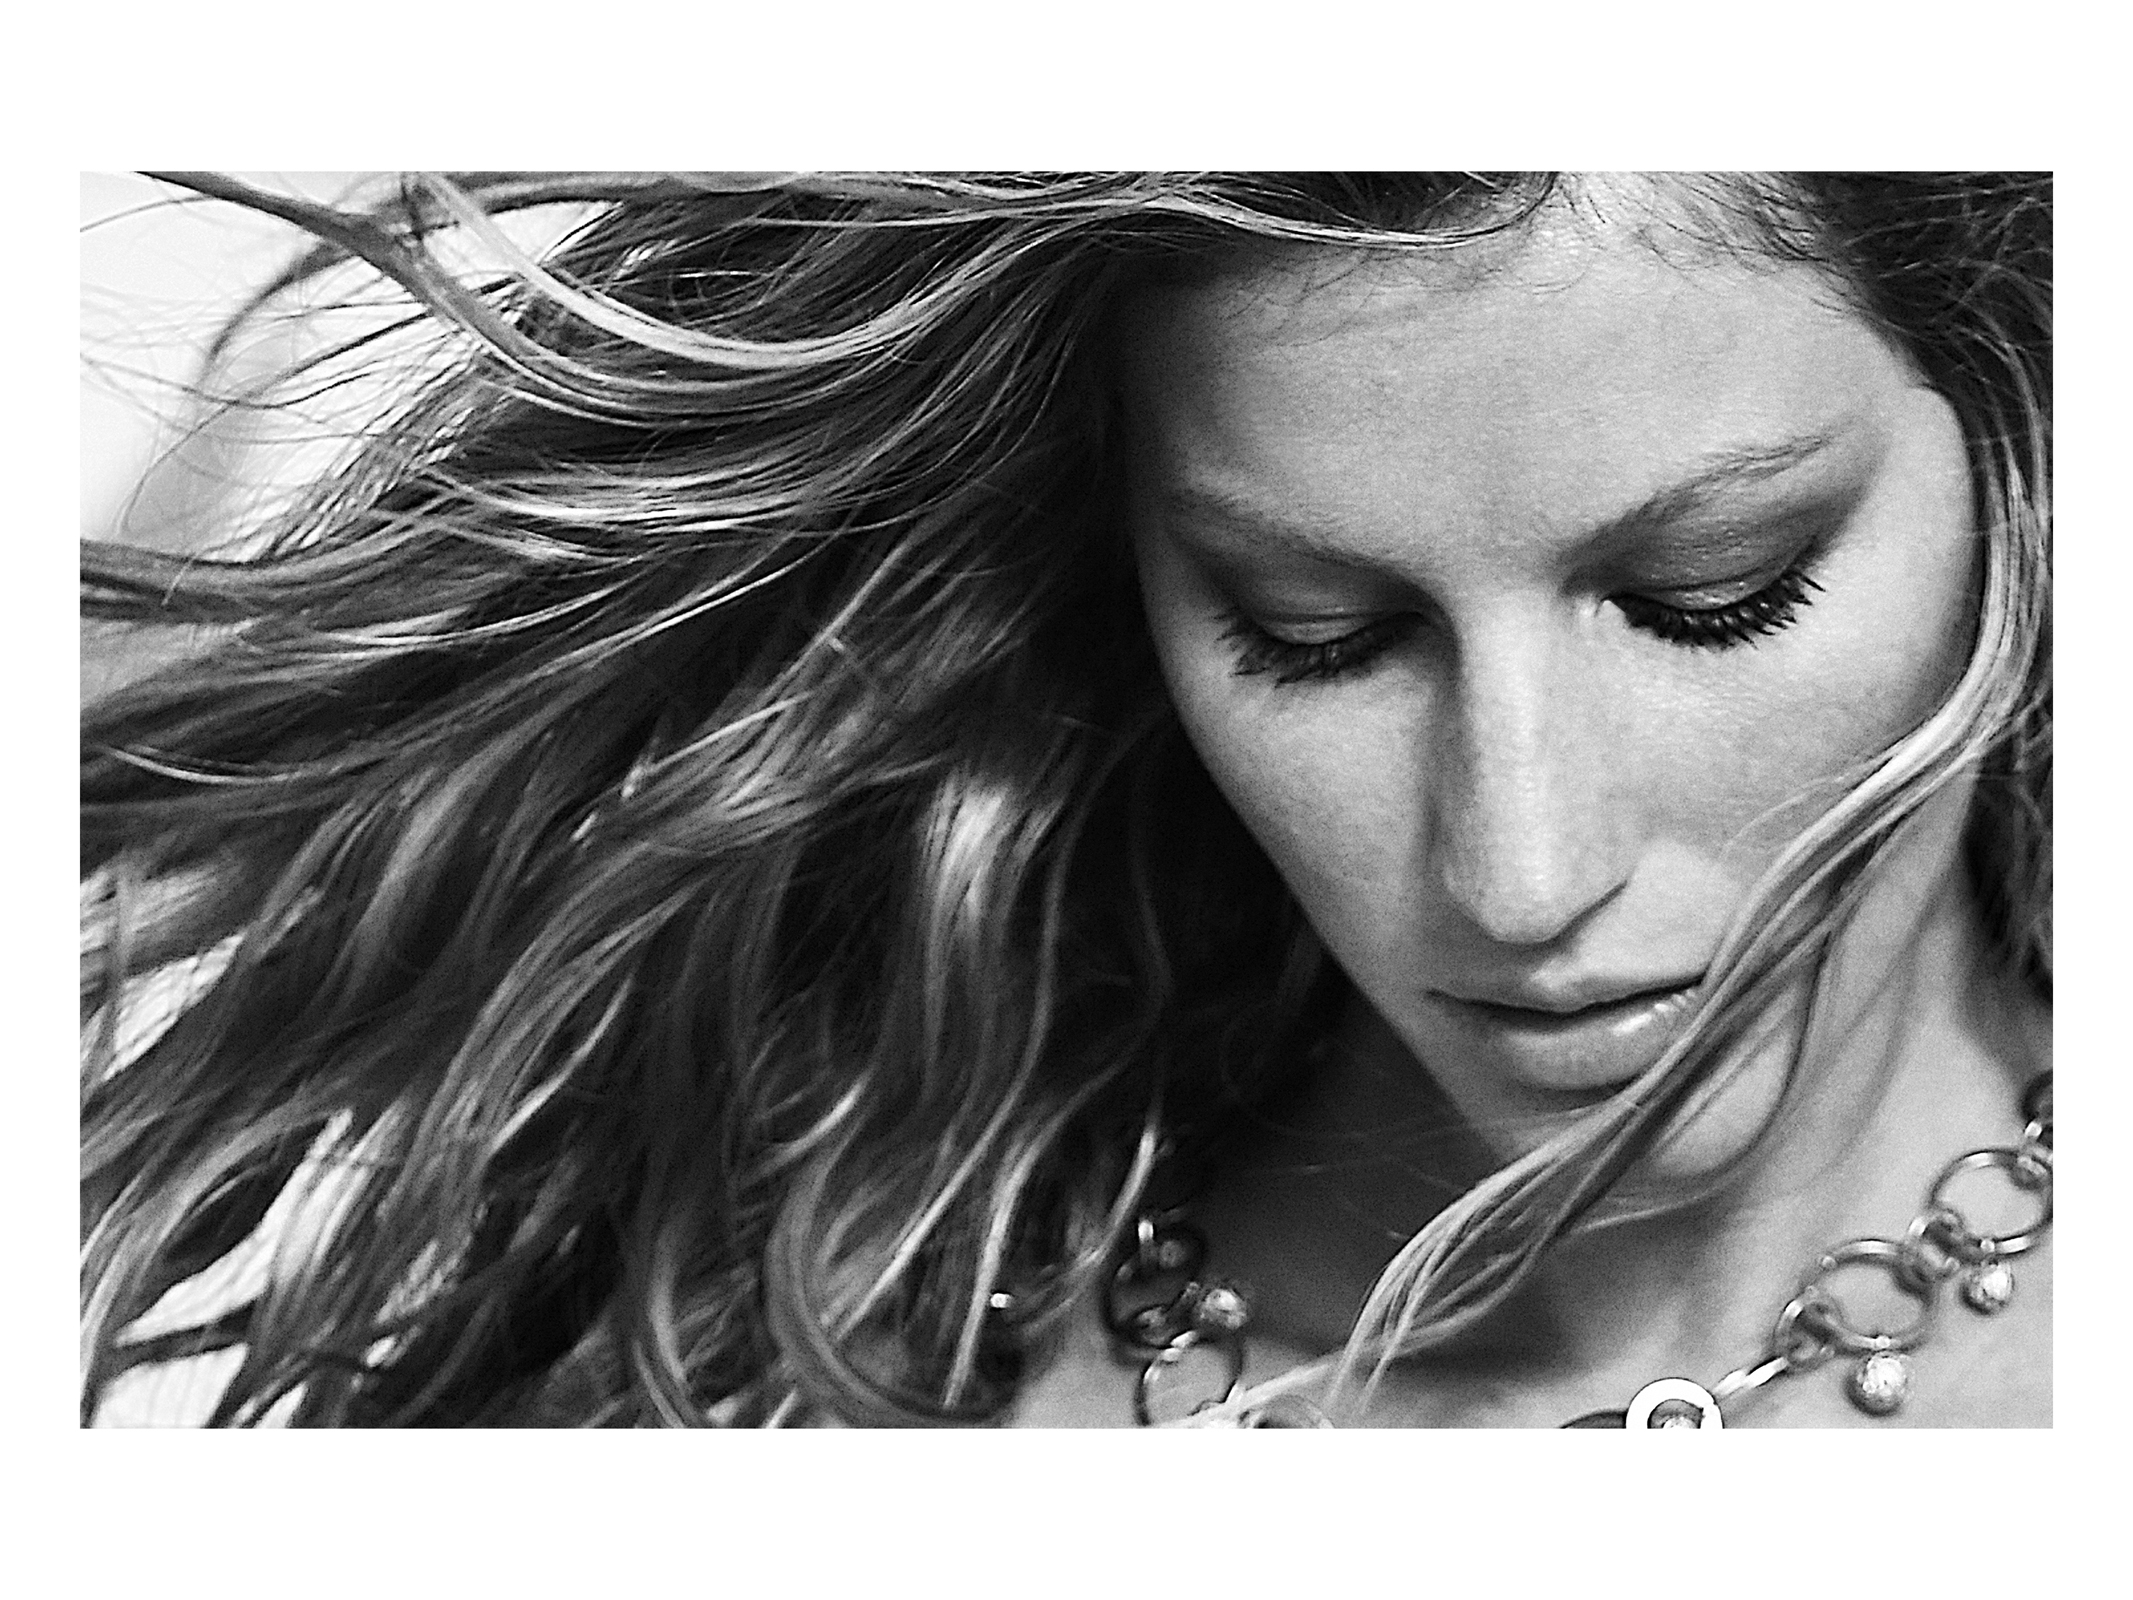 Gisele Bündchen Black White Face Wallpaper - Gisele Bündchen Net Worth, Pics, Wallpapers, Career and Biography